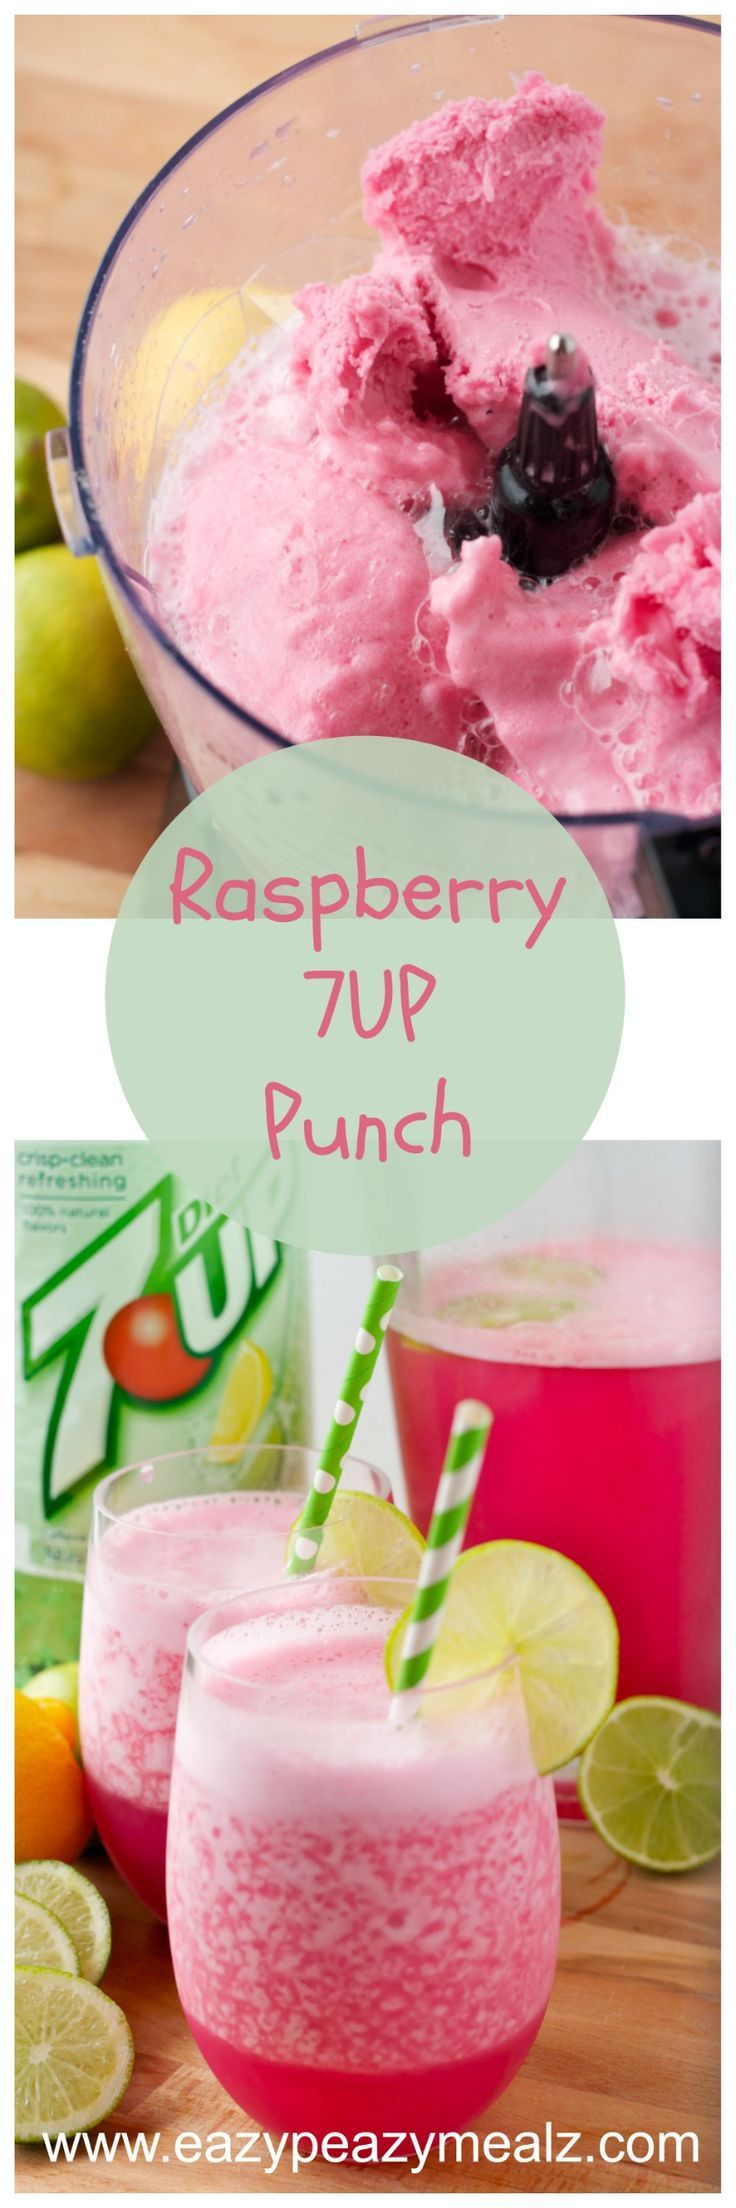 Beverage Recipes: Canada Dry Ginger Ale® and 7UP® Punch Recipes